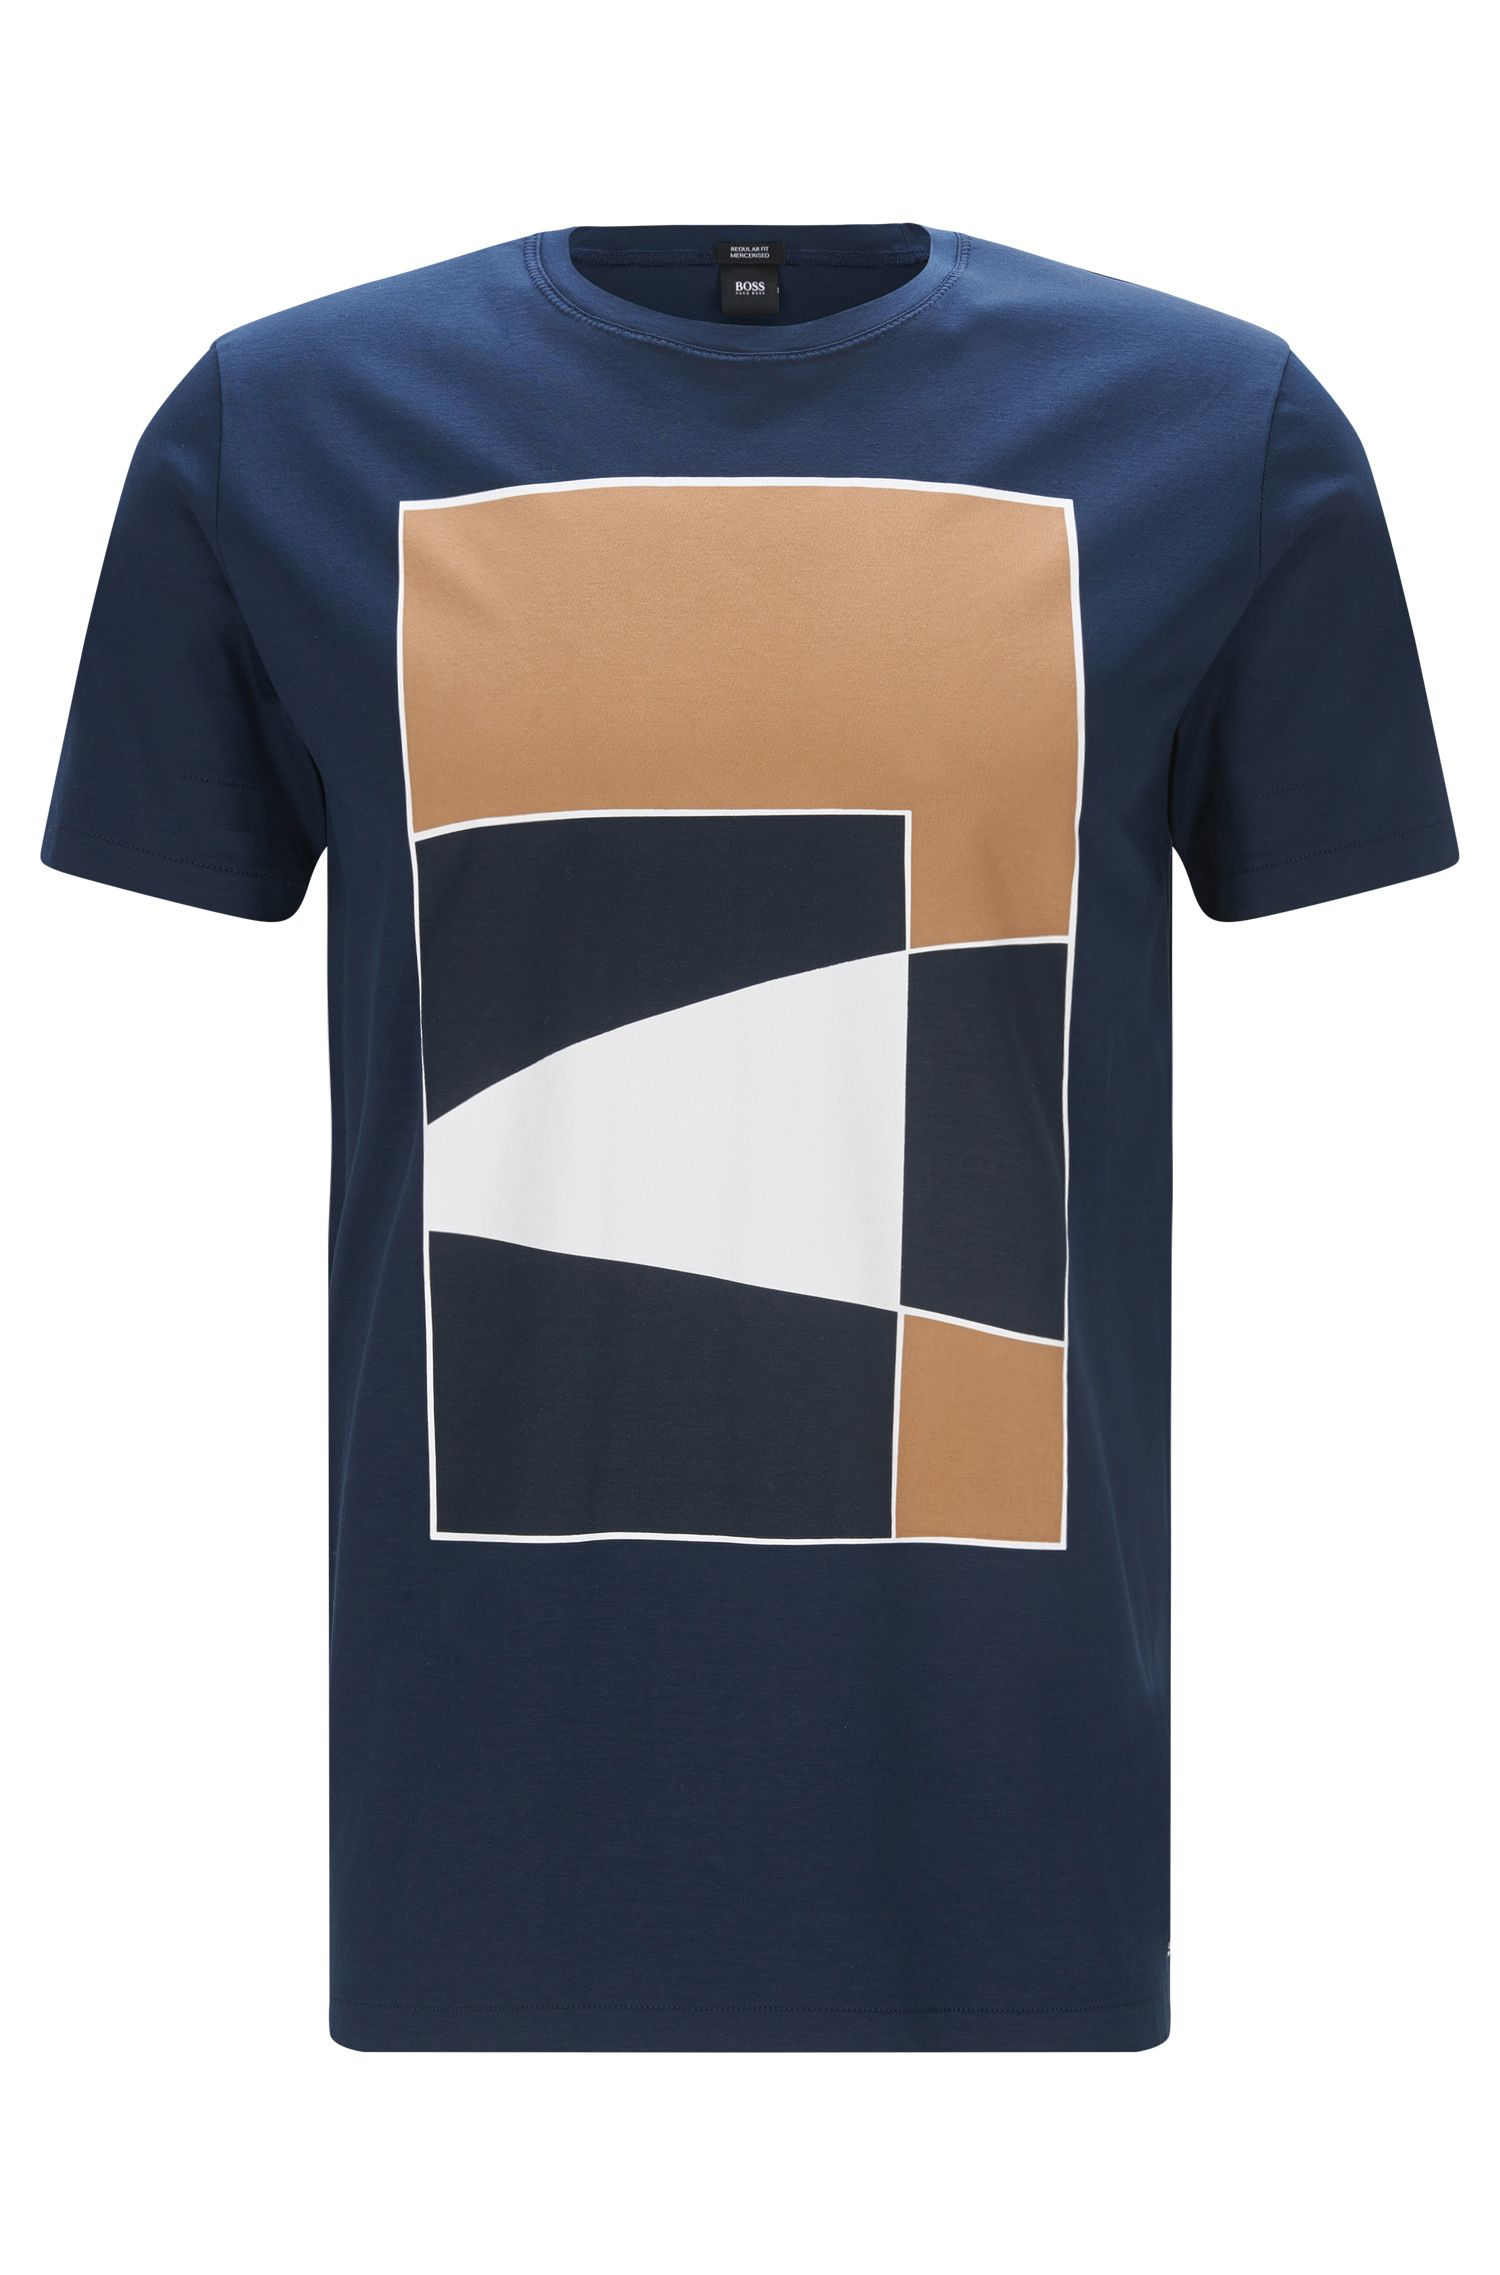 T-shirt regular fit in cotone mercerizzato con stampa geometrica